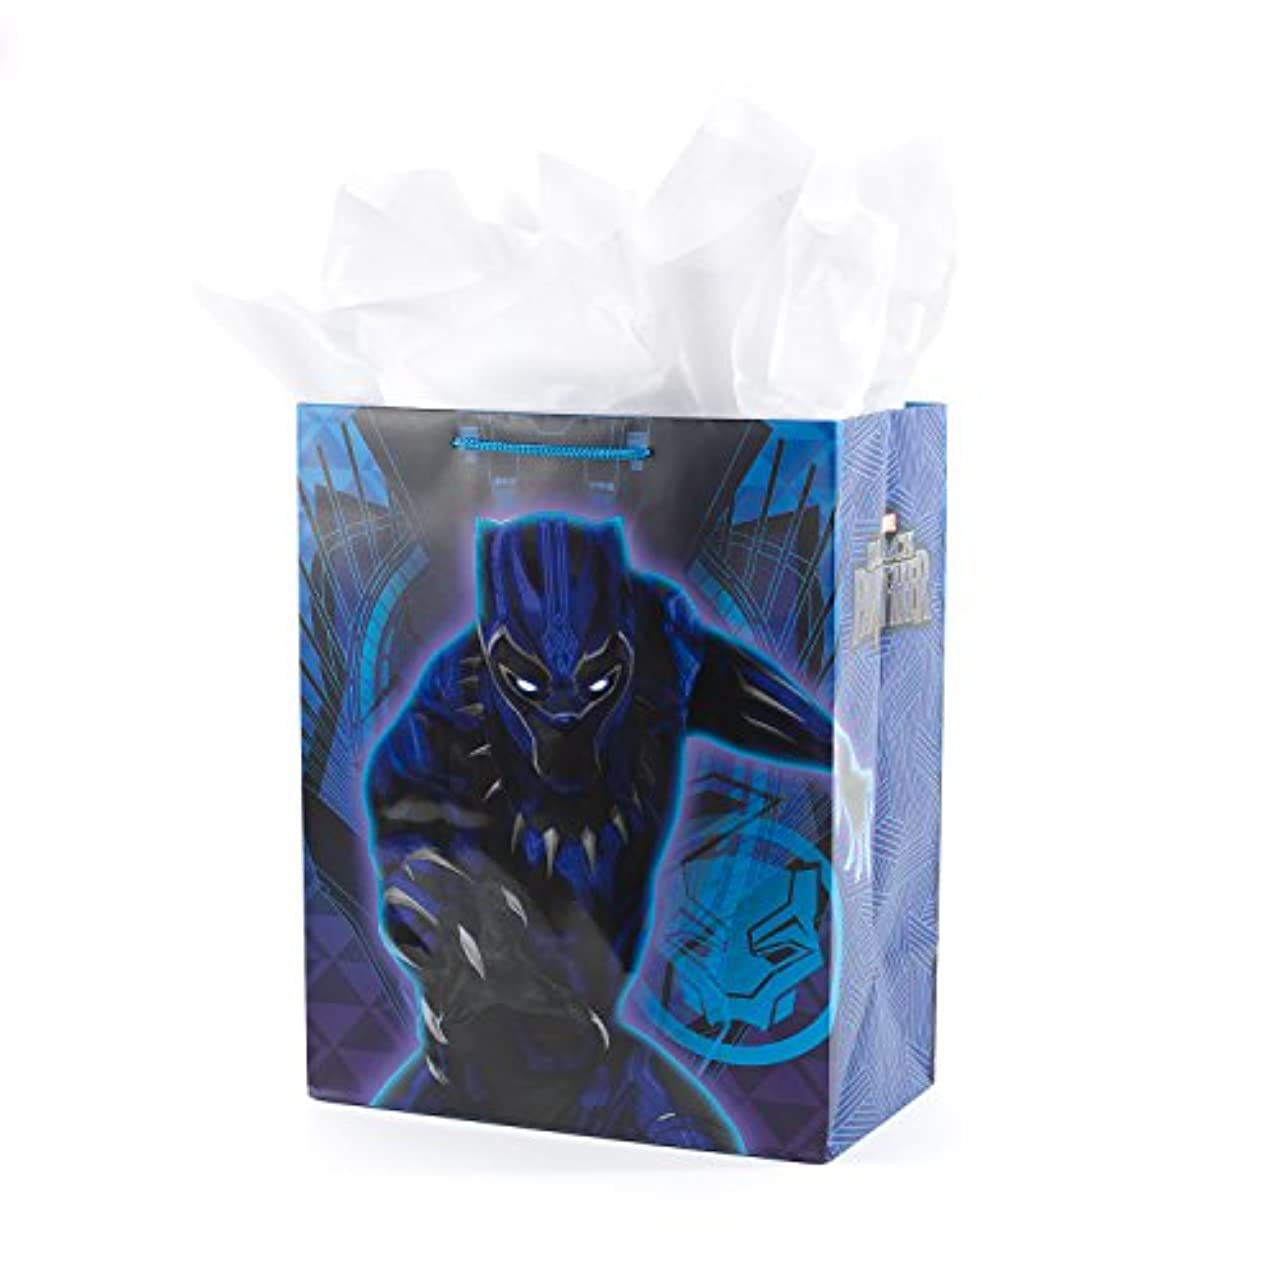 Hallmark Large Avengers Gift Bag with Tissue Paper for Birthdays, Kids Parties or Any Occasion (Black Panther)